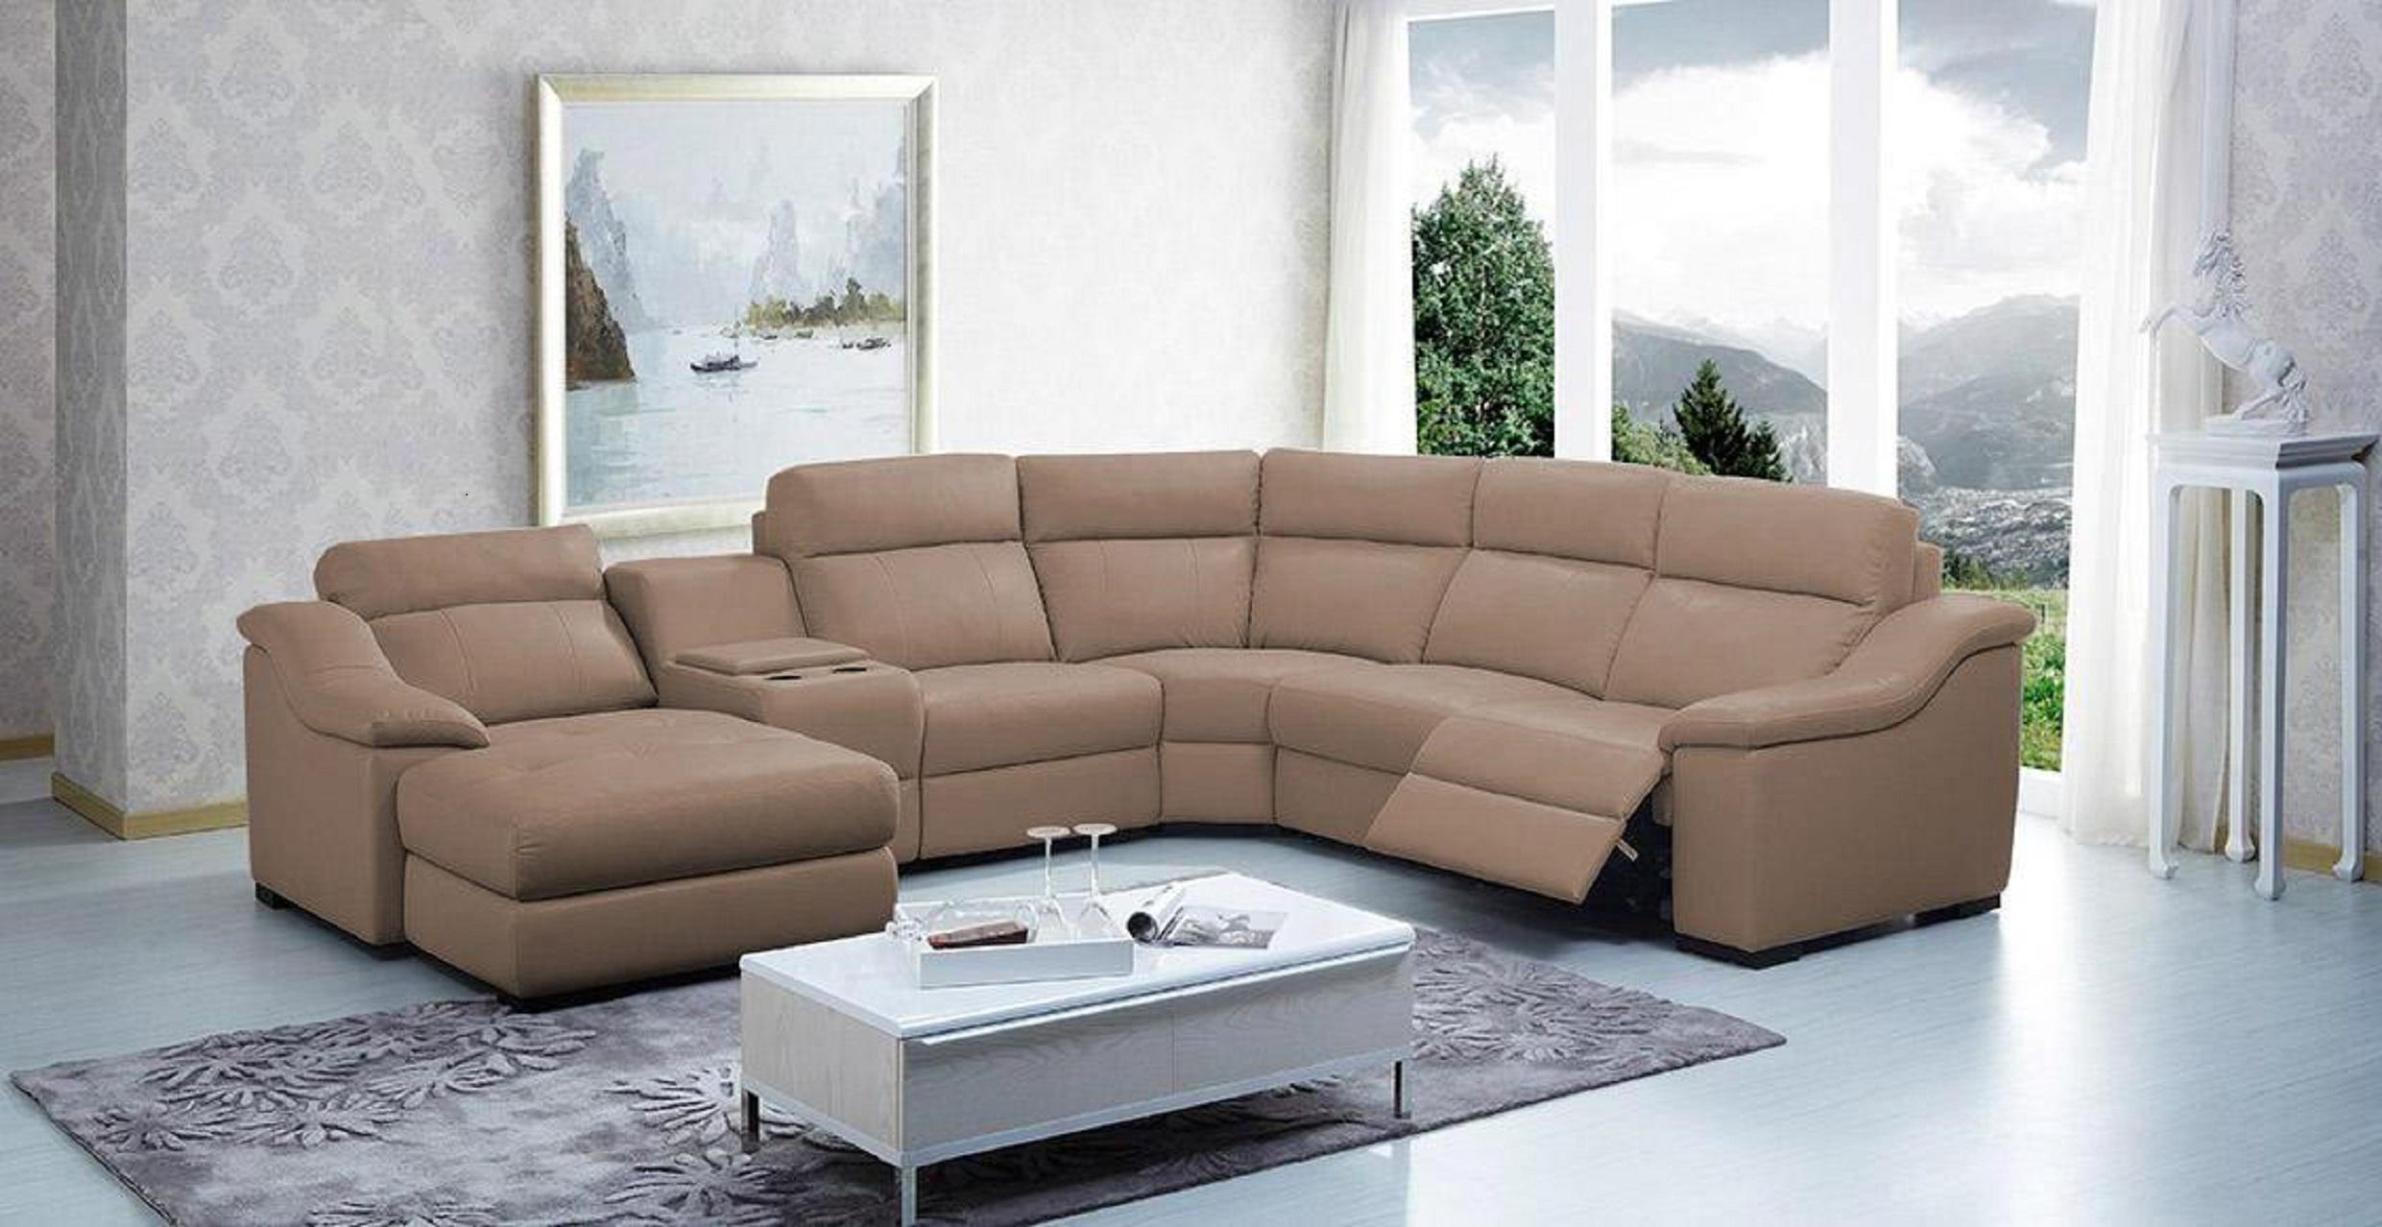 Image of: Microfiber Sectional Sofas With Recliners